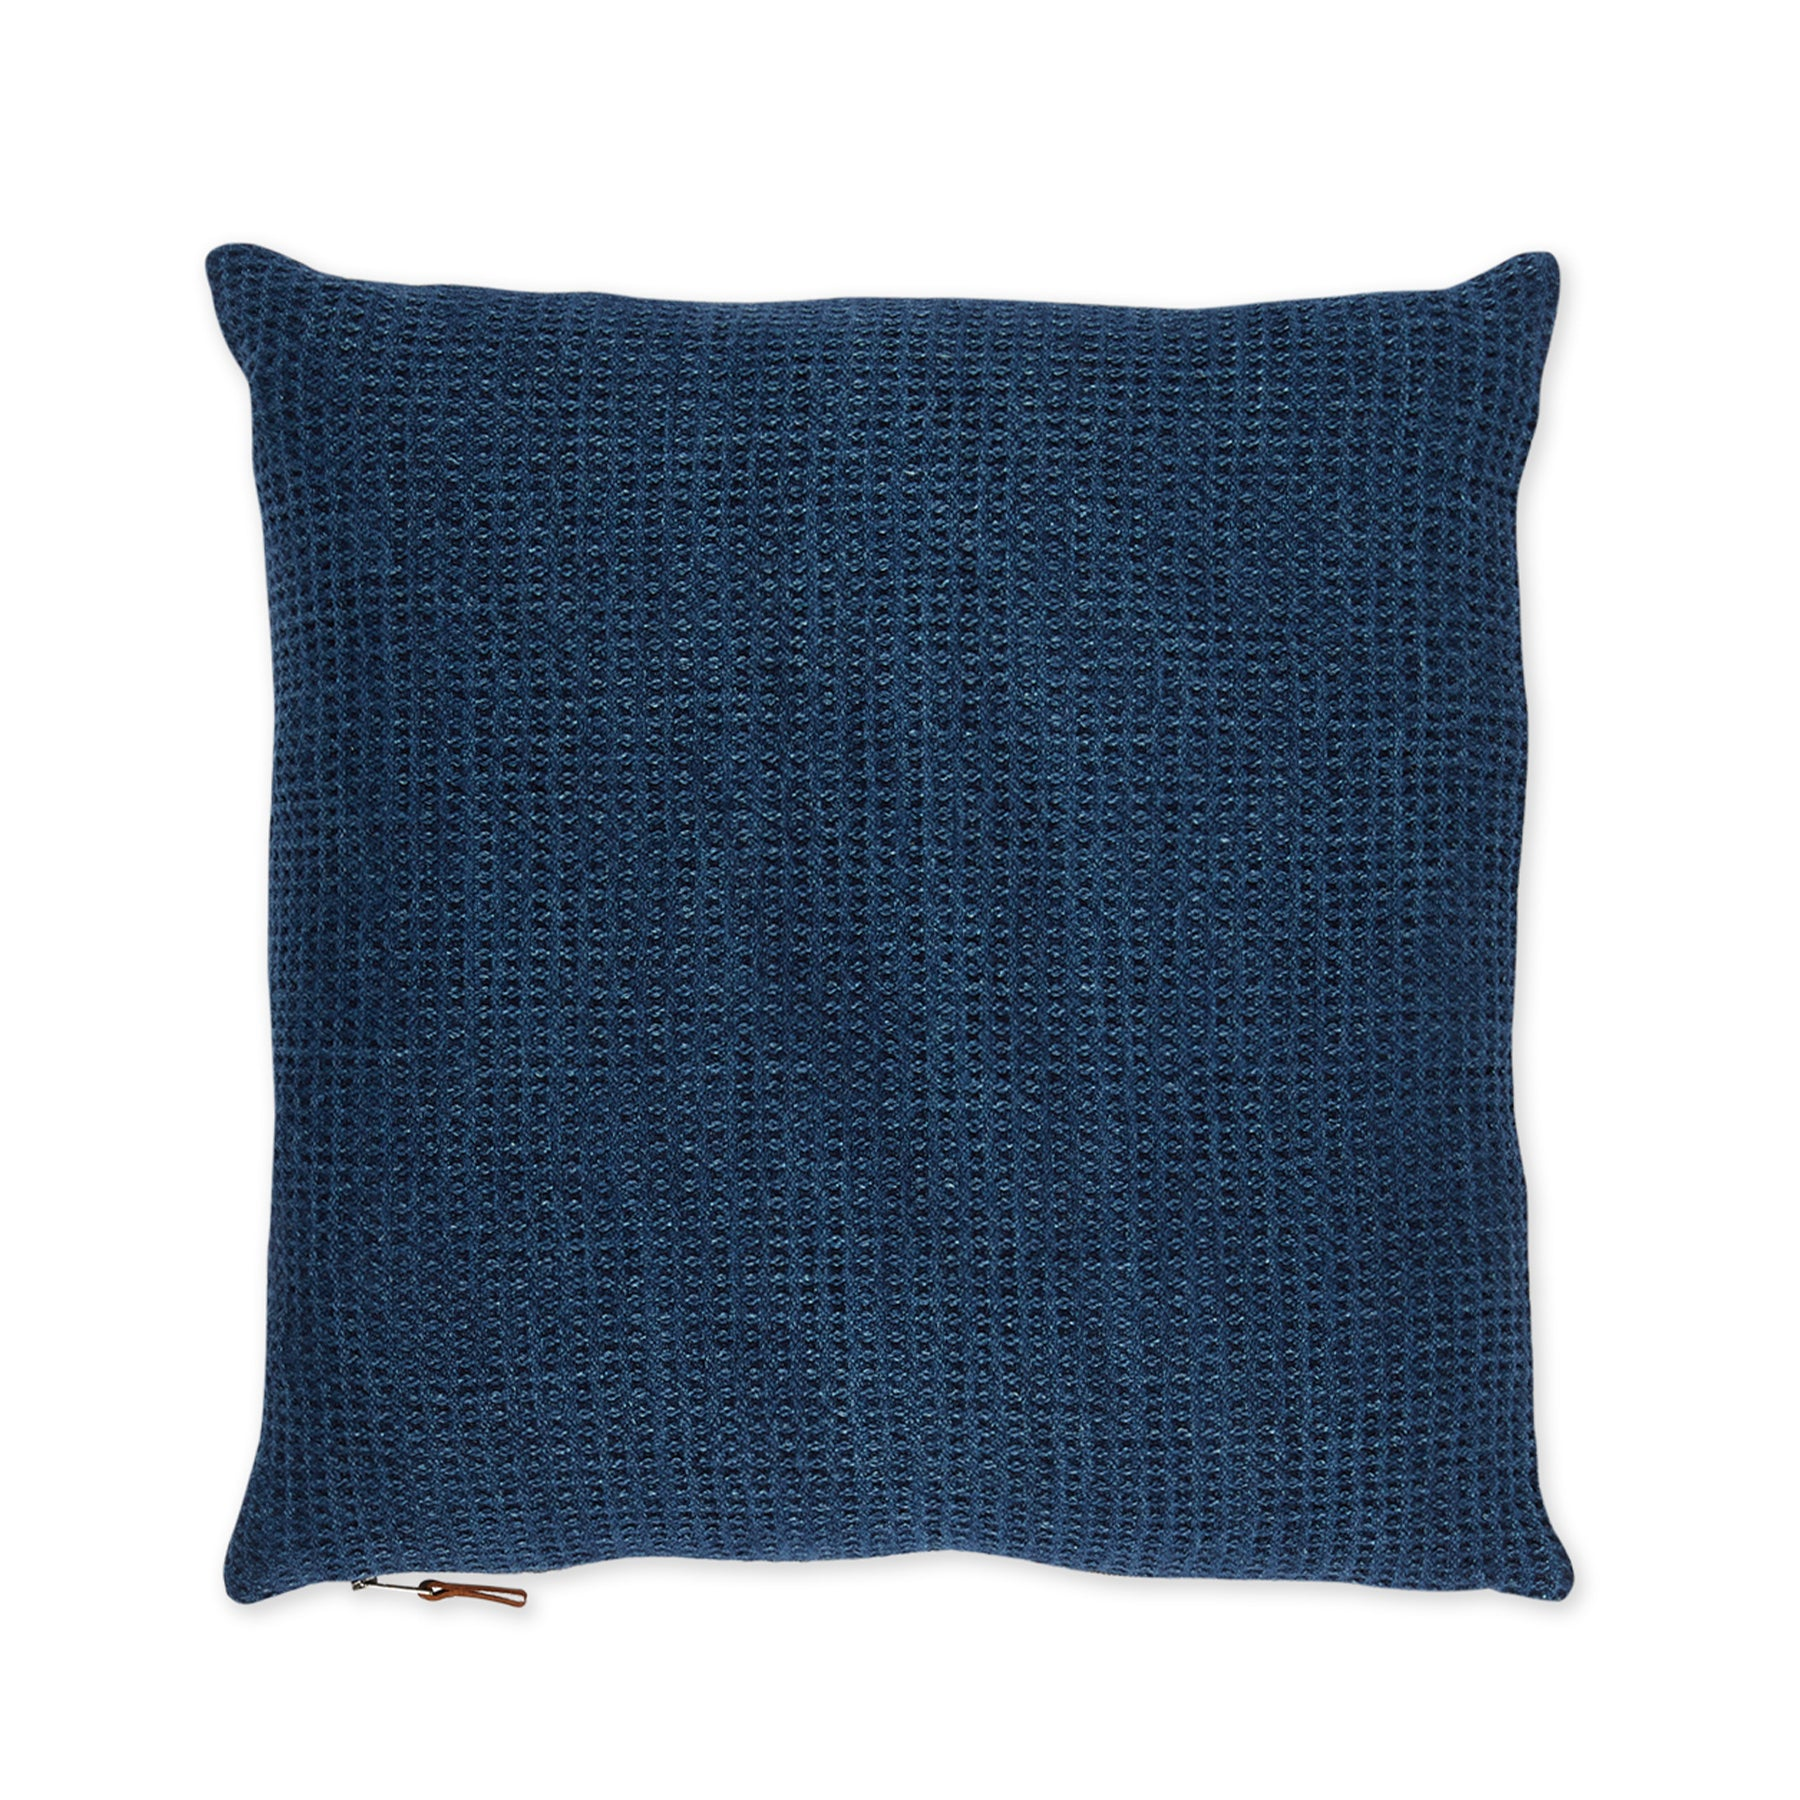 Linen Waffle Knit Pillow in Indigo Zoom Image 1